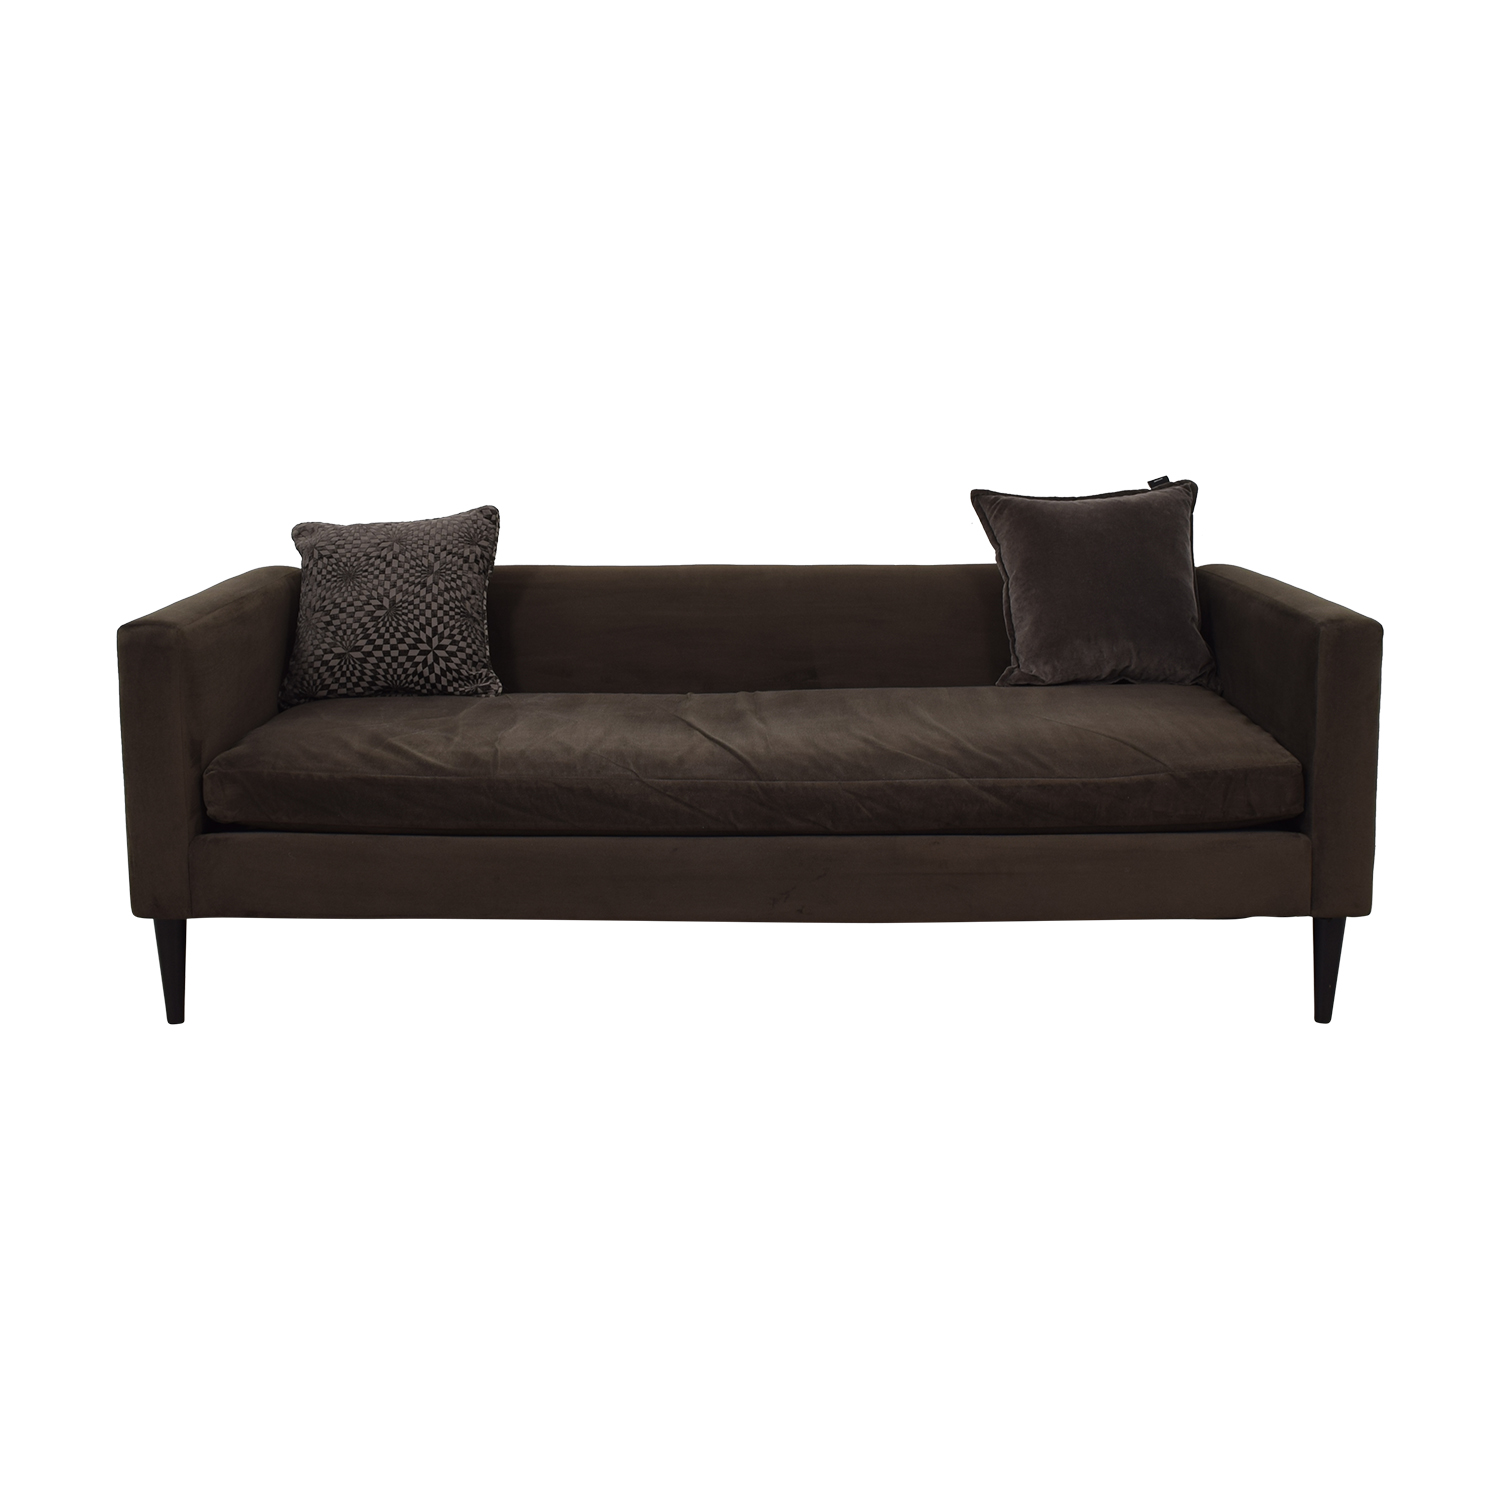 CB2 CB2 Brown Sofa with Two Throw Pillows discount